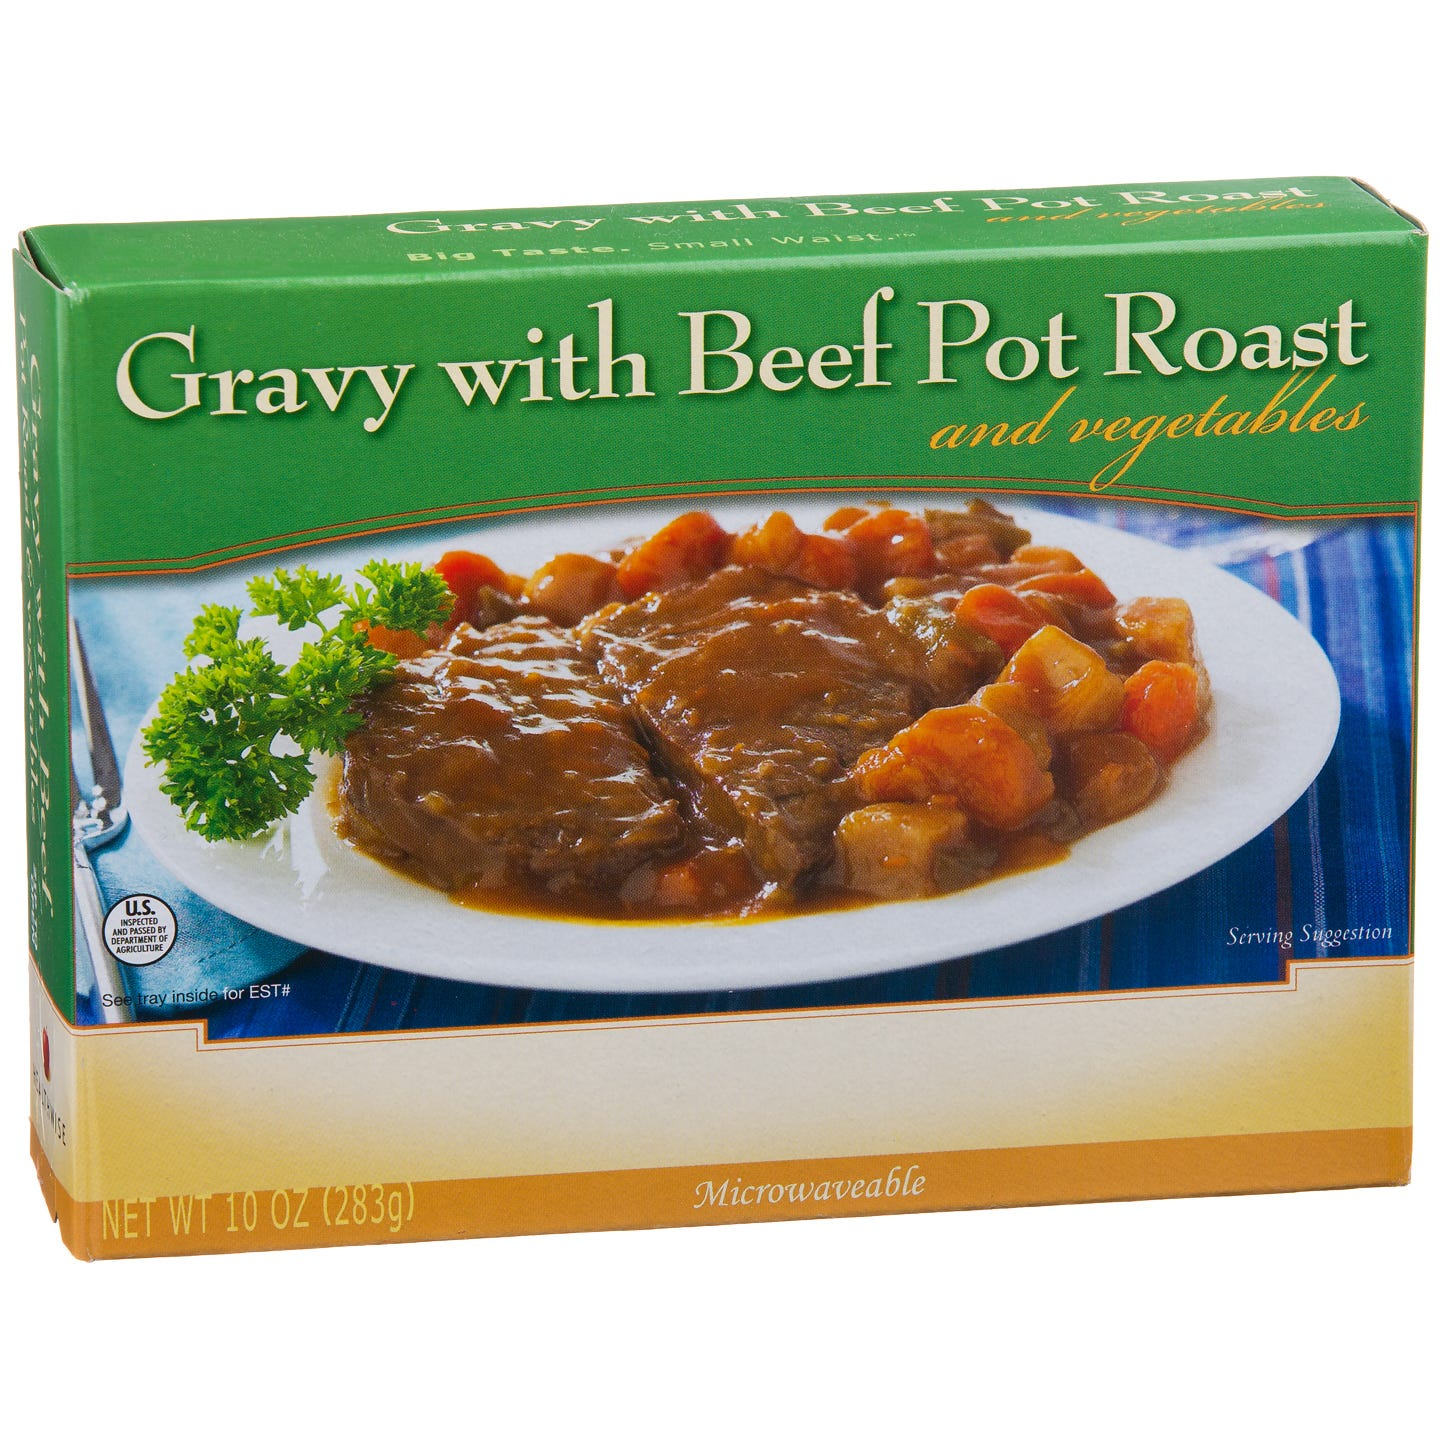 BariWise Low Calorie Meals, Gravy with Beef Pot Roast